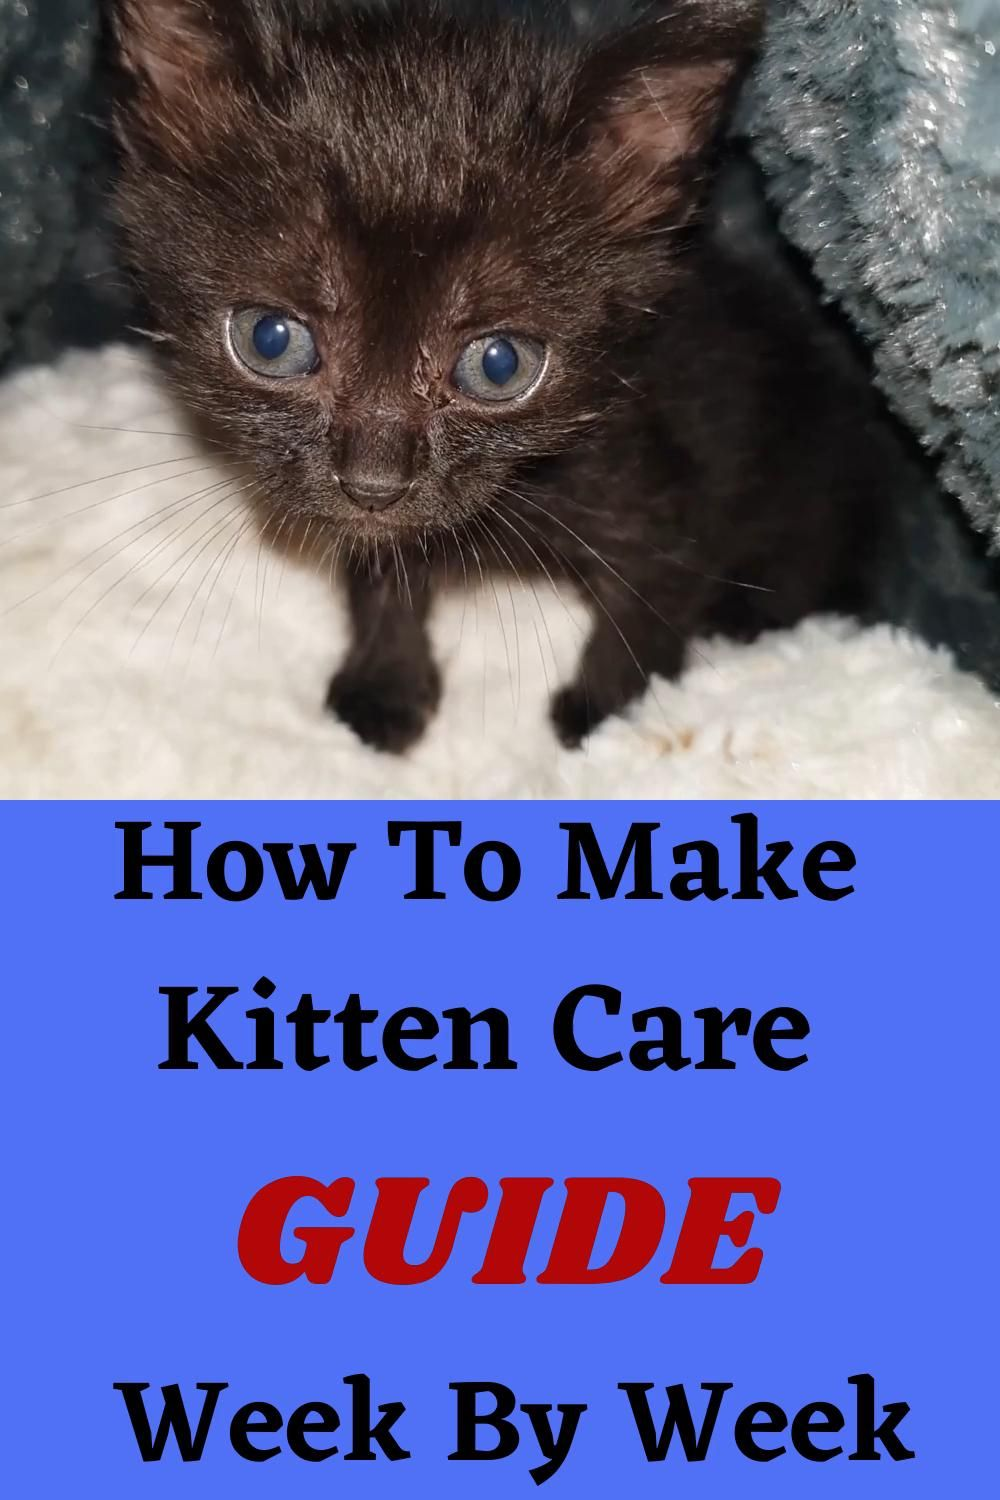 Secret Techniques To Improve Caring For Kitten Week By Week Video In 2020 Kitten Care Cat Care Tips Cat Memes